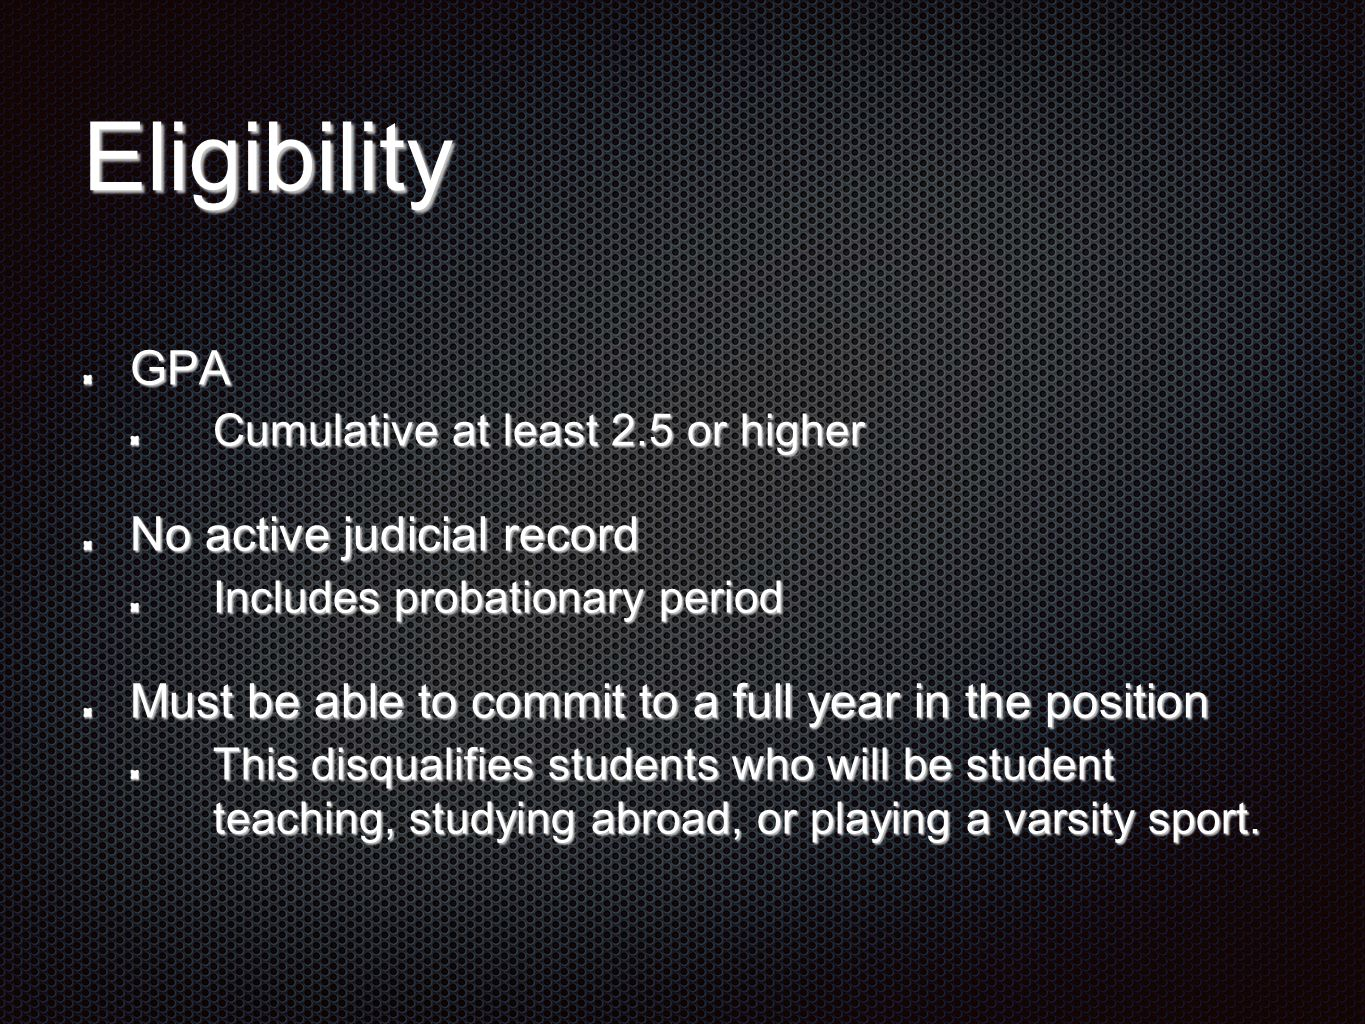 Eligibility GPA Cumulative at least 2.5 or higher No active judicial record Includes probationary period Must be able to commit to a full year in the